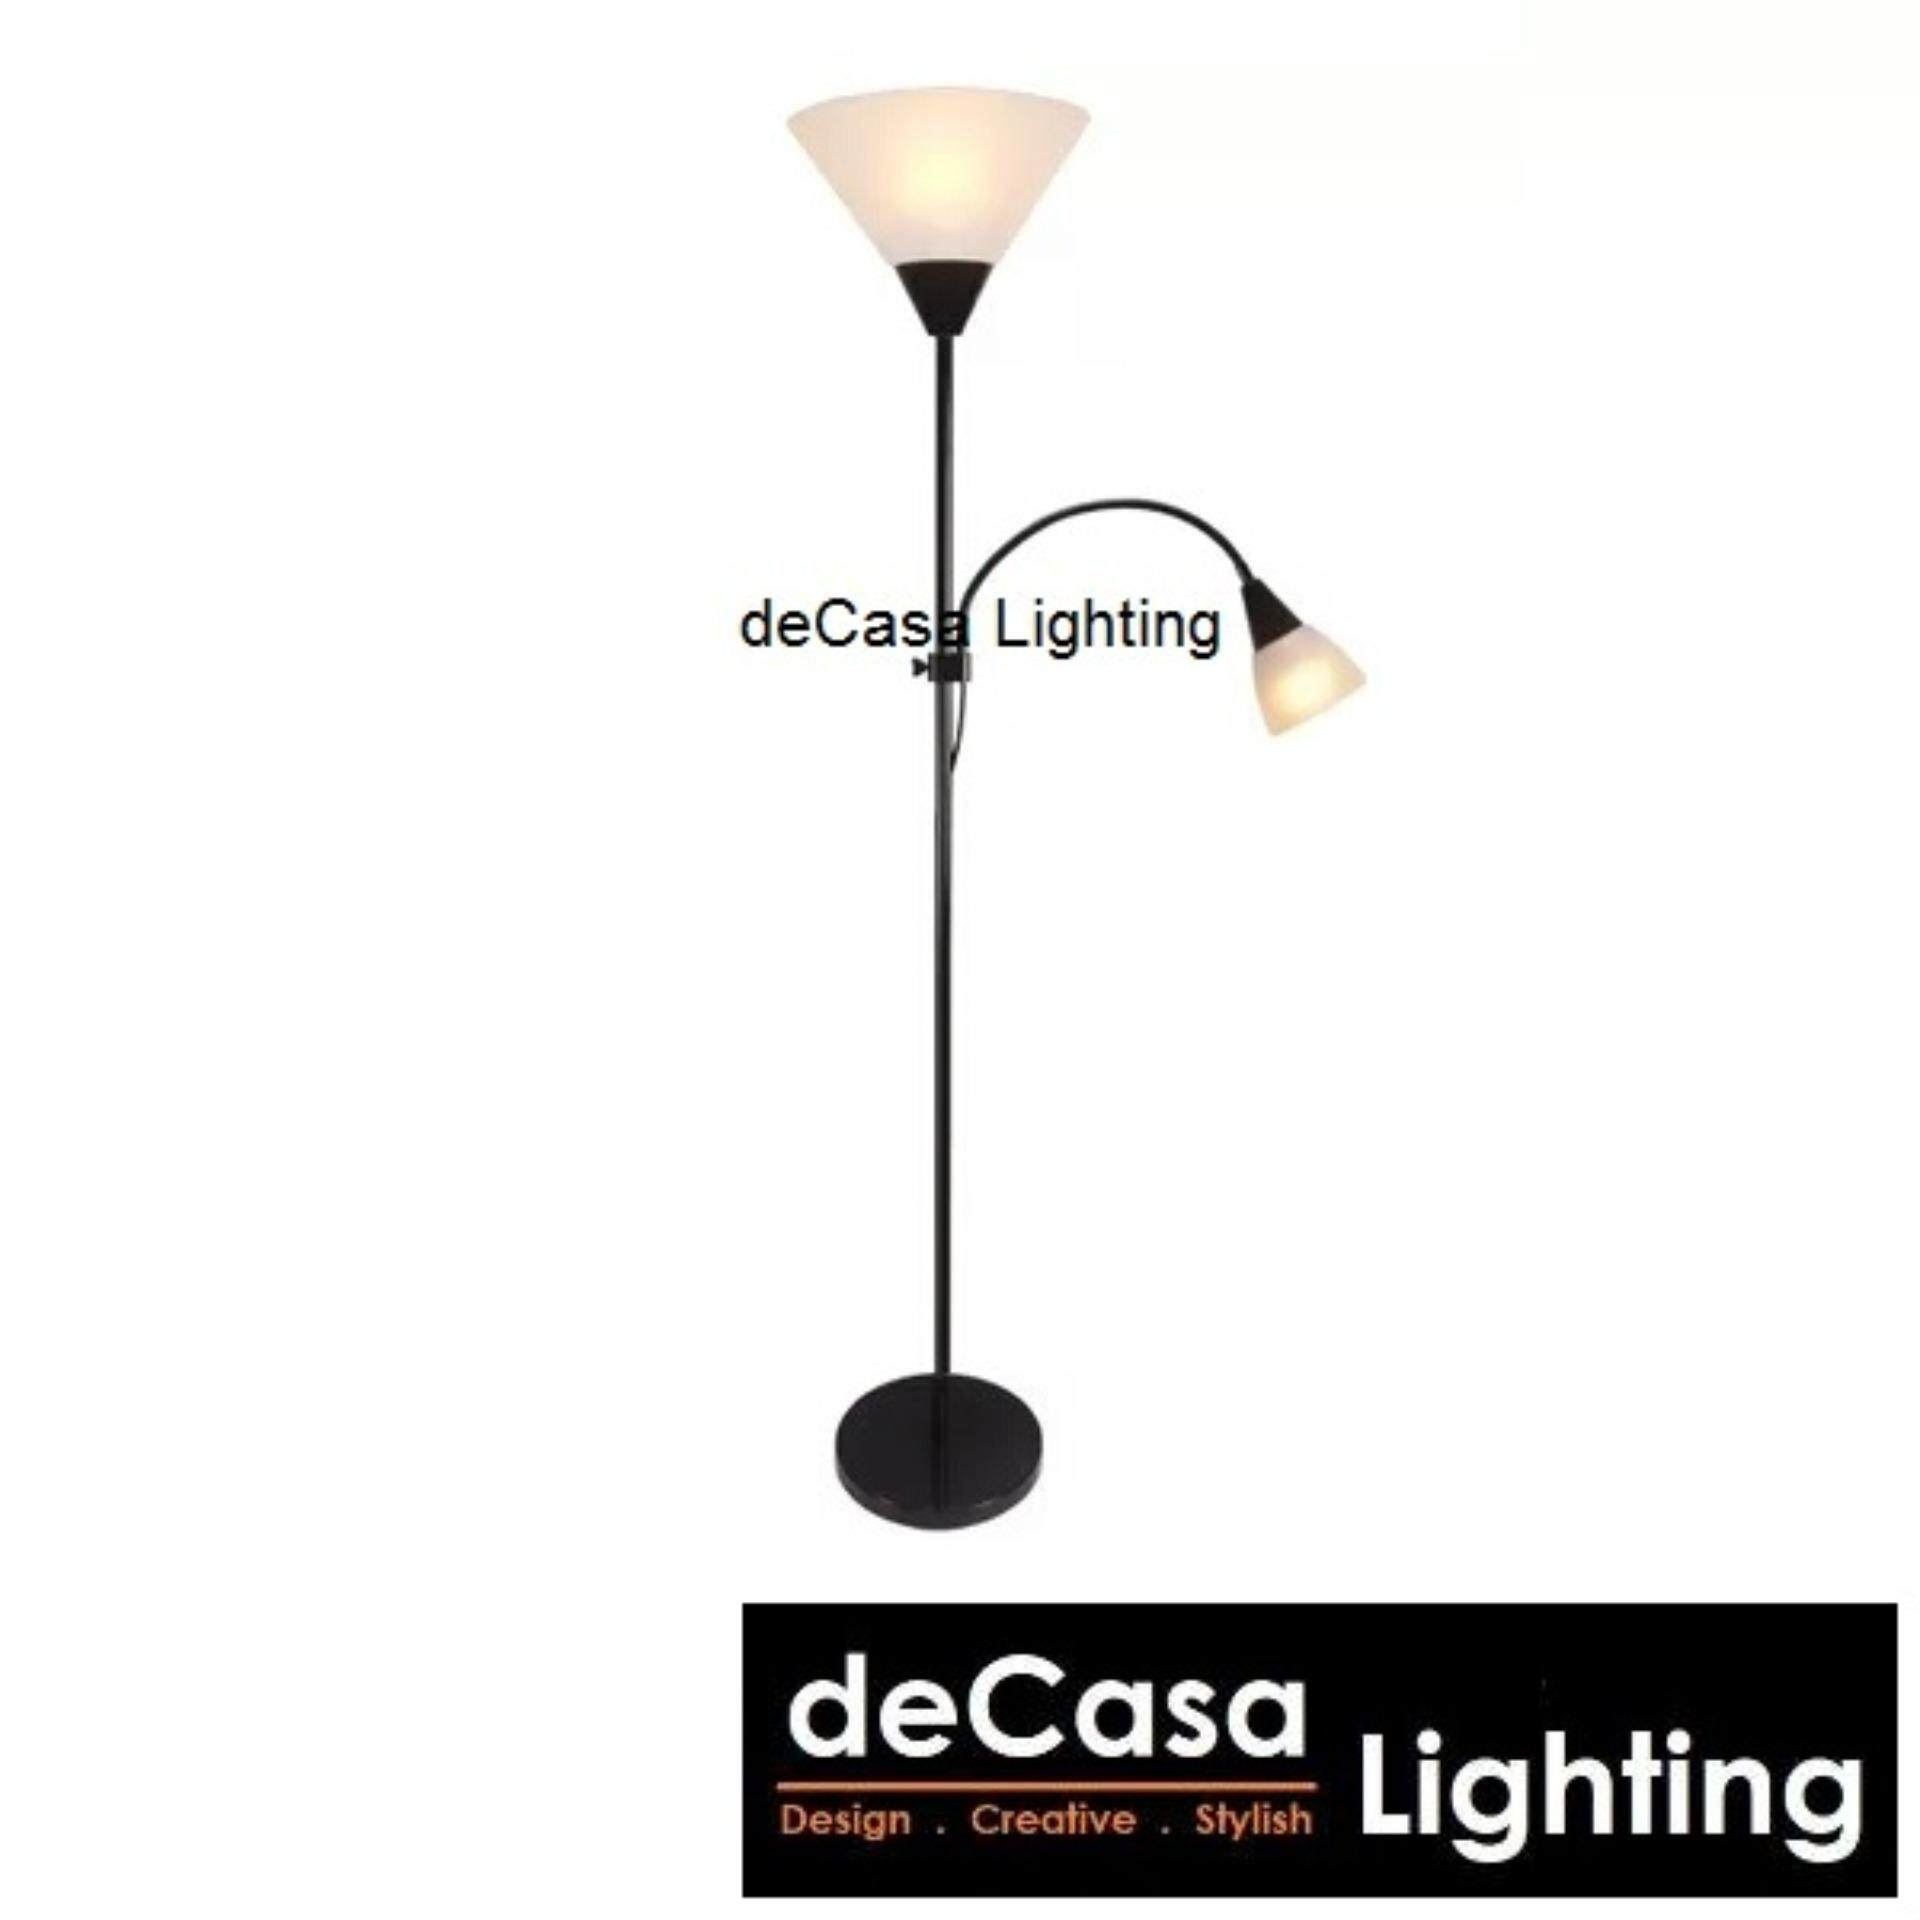 Floor Lighting Decasa Lighting Ikea Style Floor Lamp Stand Lamp Adjustable Standing Lamp (HA-BSL-5021-BK)